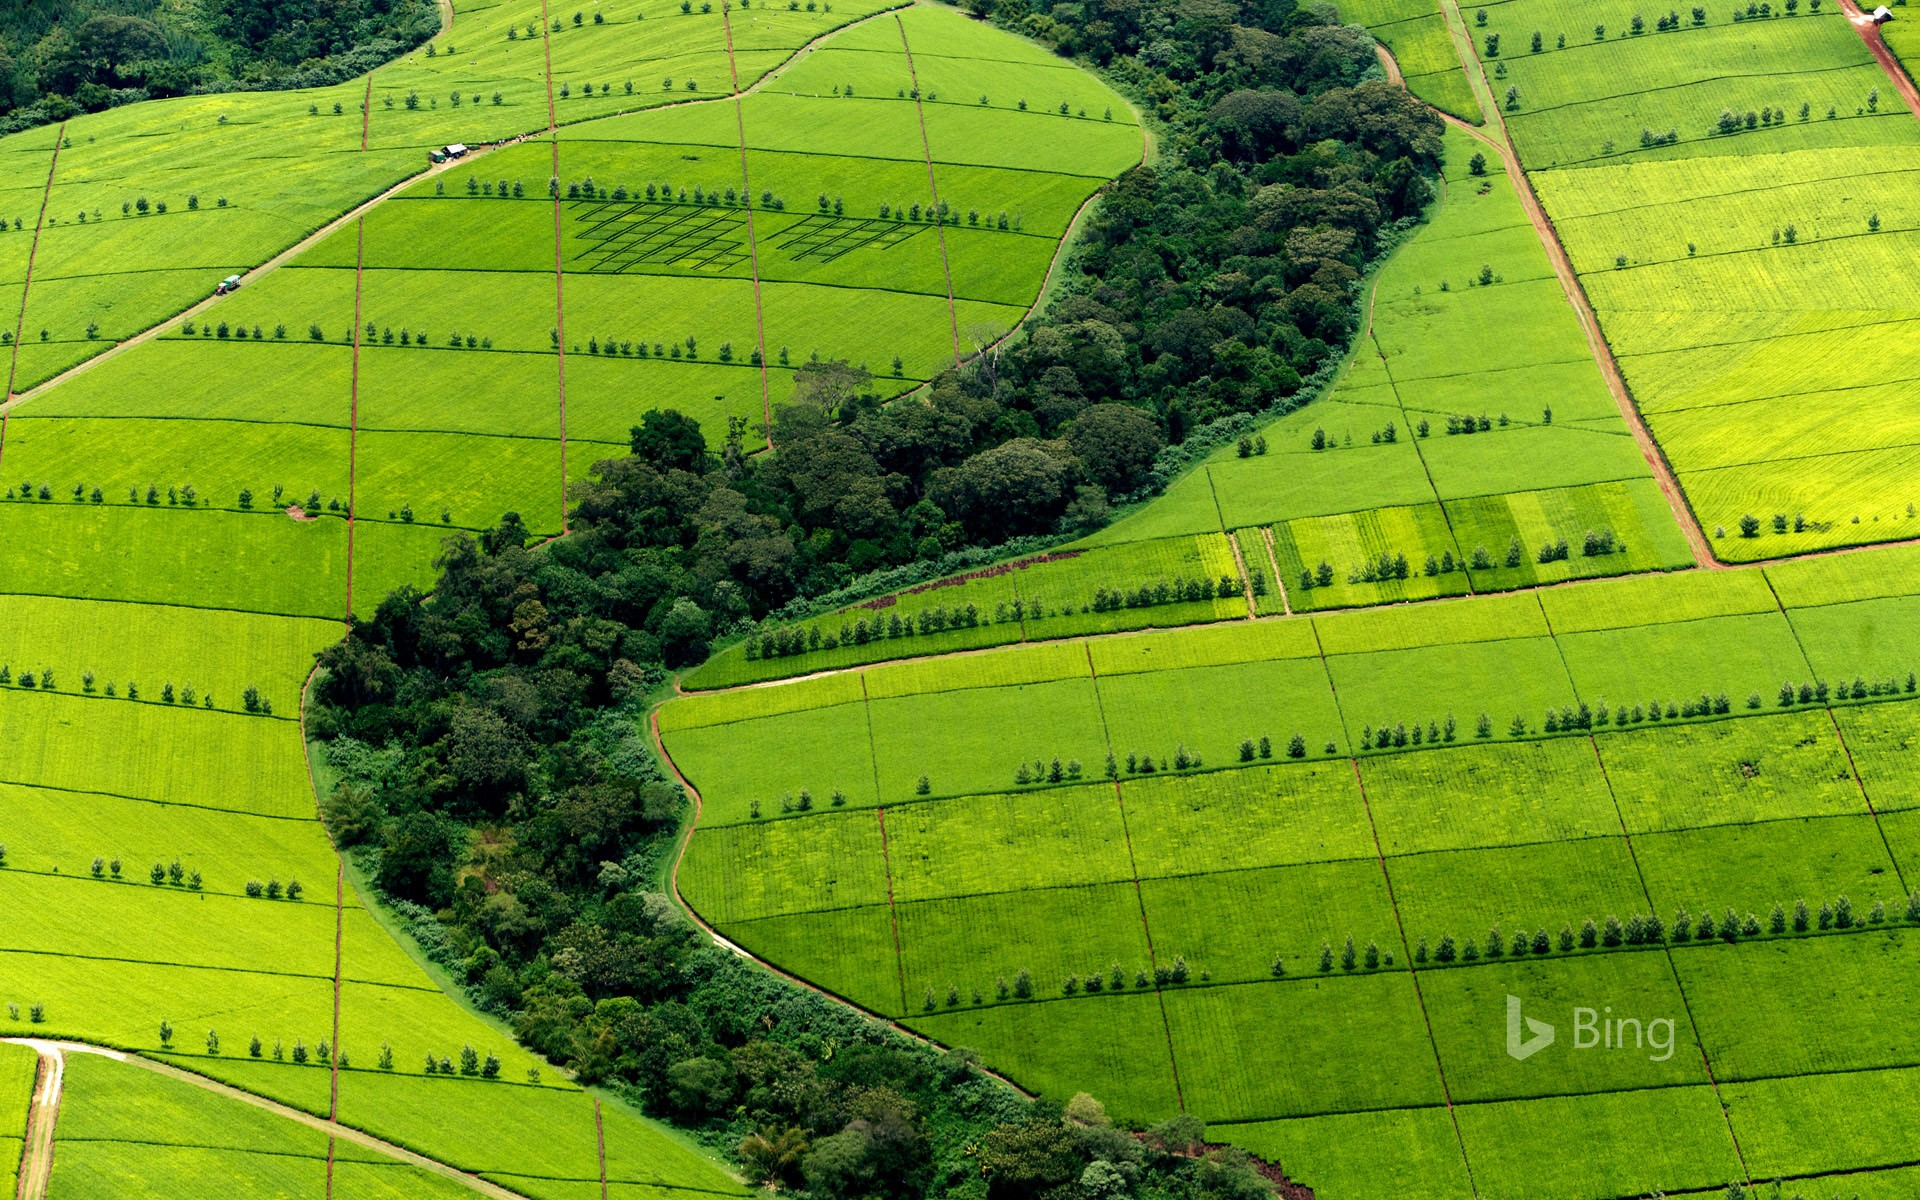 Tea plantation in Kericho County, Kenya